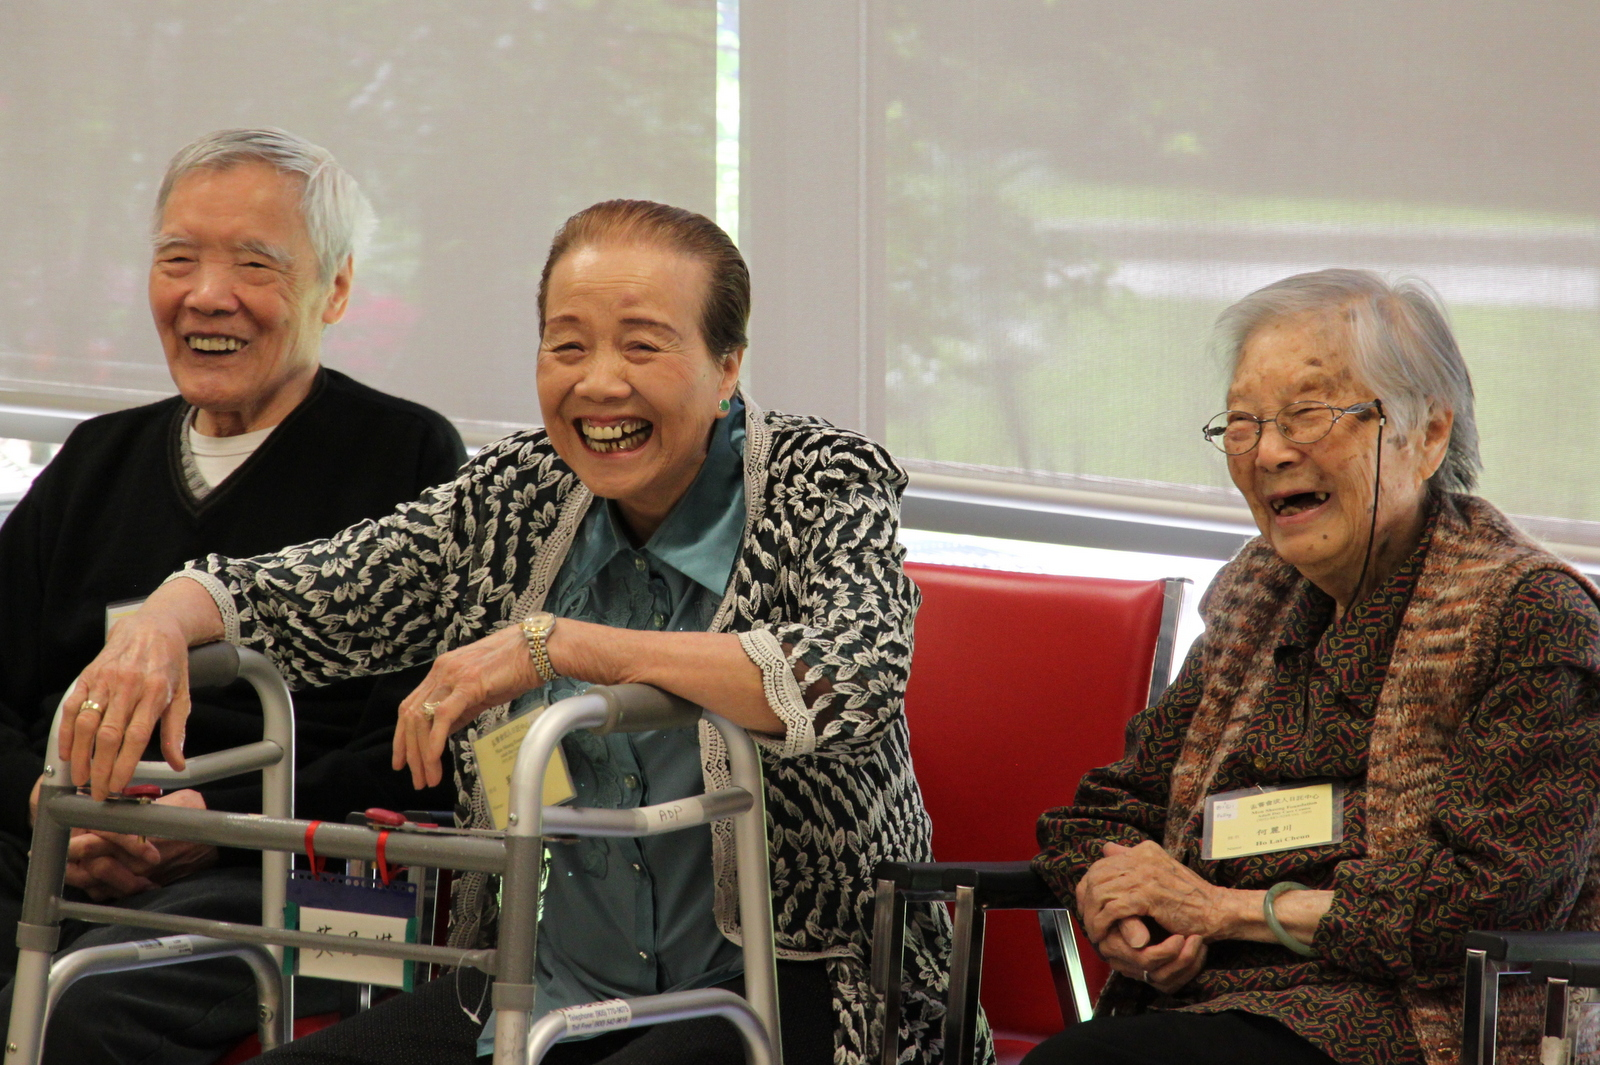 Adult Day Program provides a happy environment for seniors